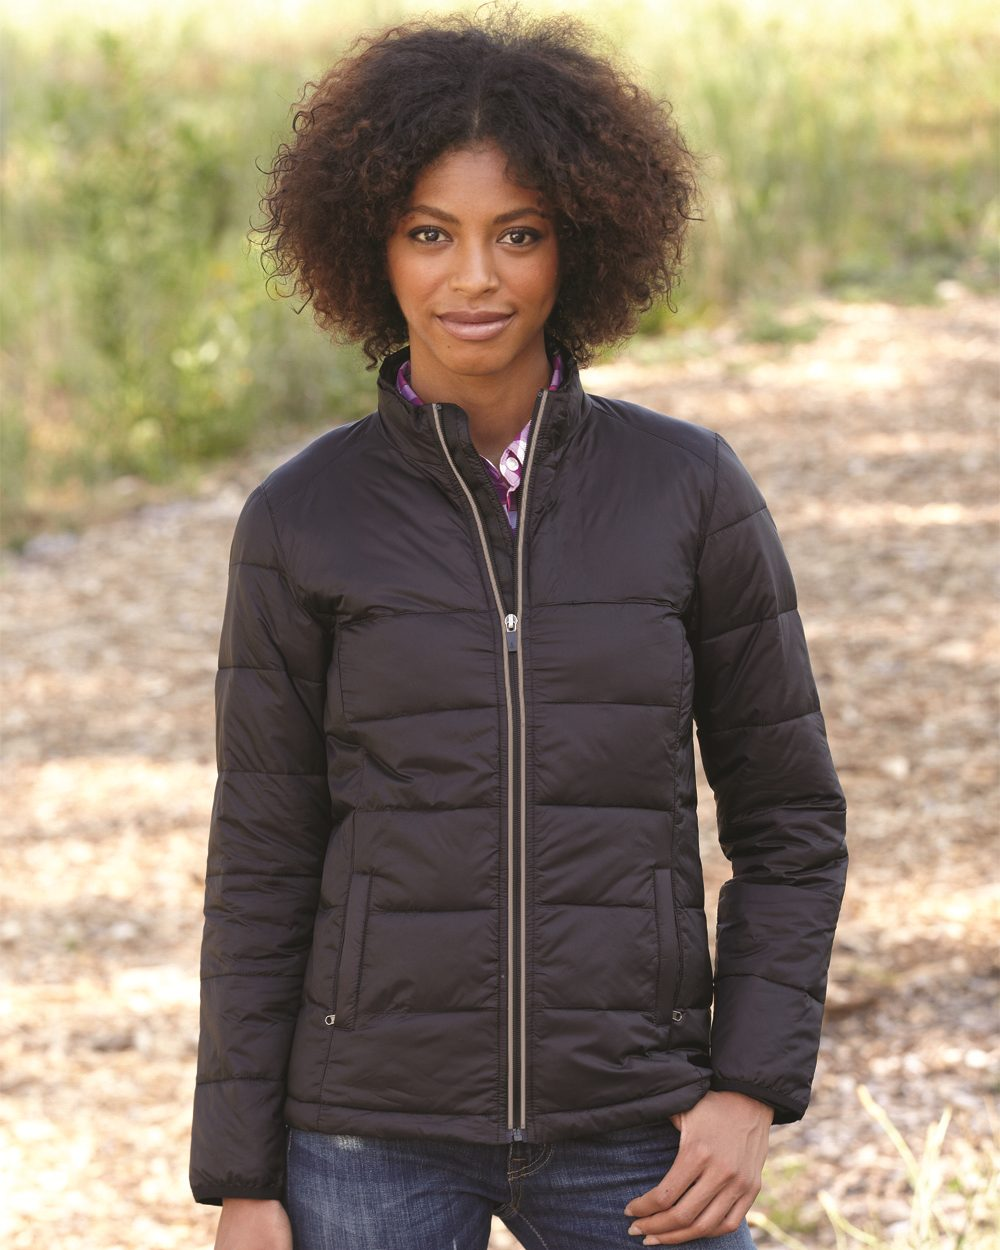 Colorado Clothing 7311 - Ladies' Packable Puffer Jacket